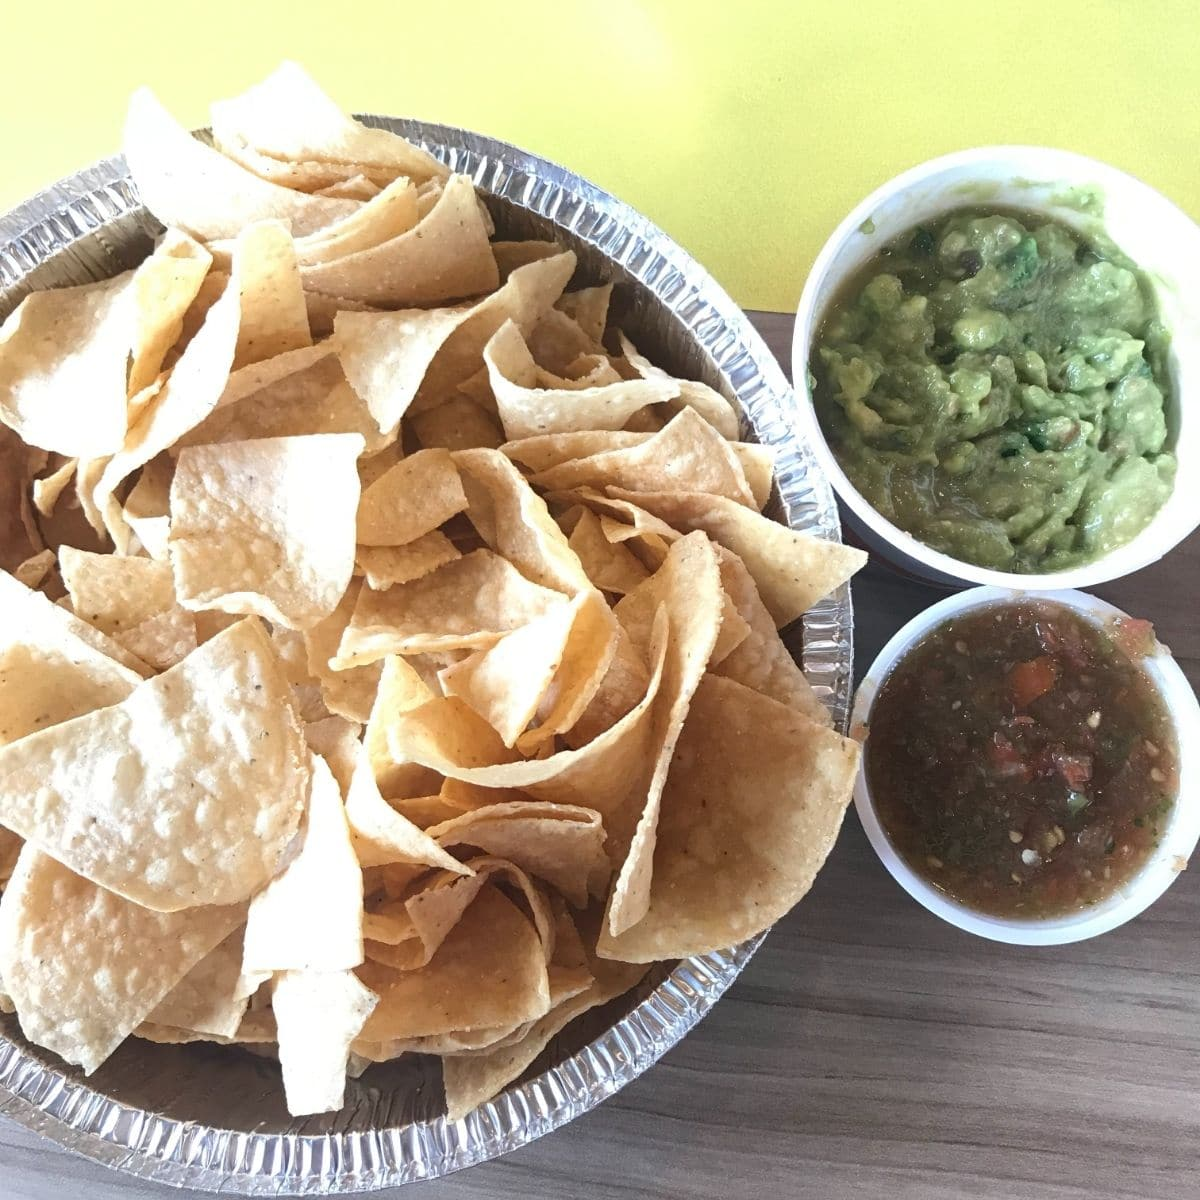 costa vida chips, guacamole, and salsa on a table that is wood and yellow